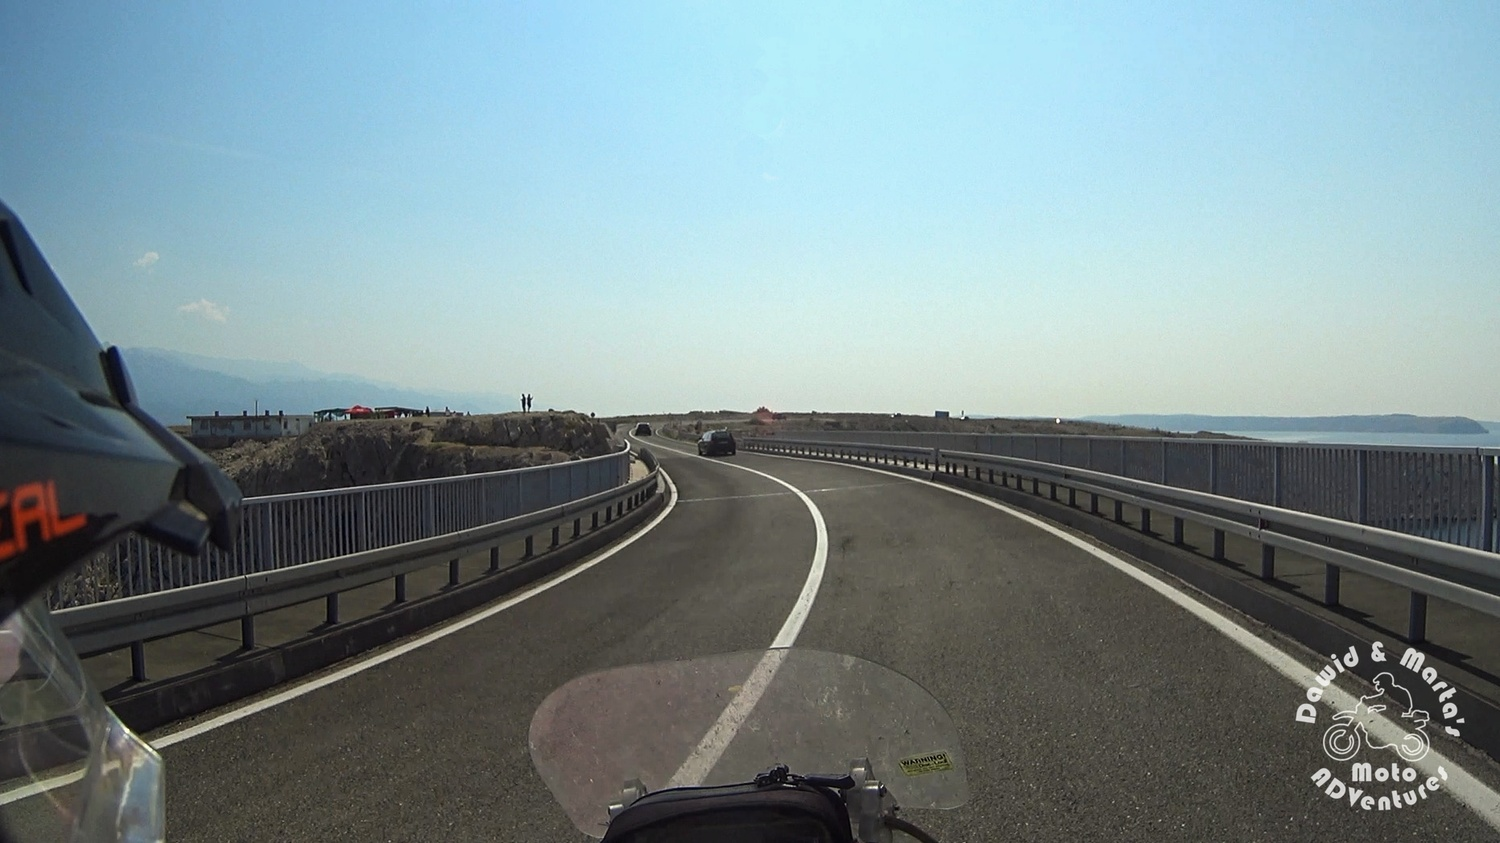 Pag bridge from a driver perspective